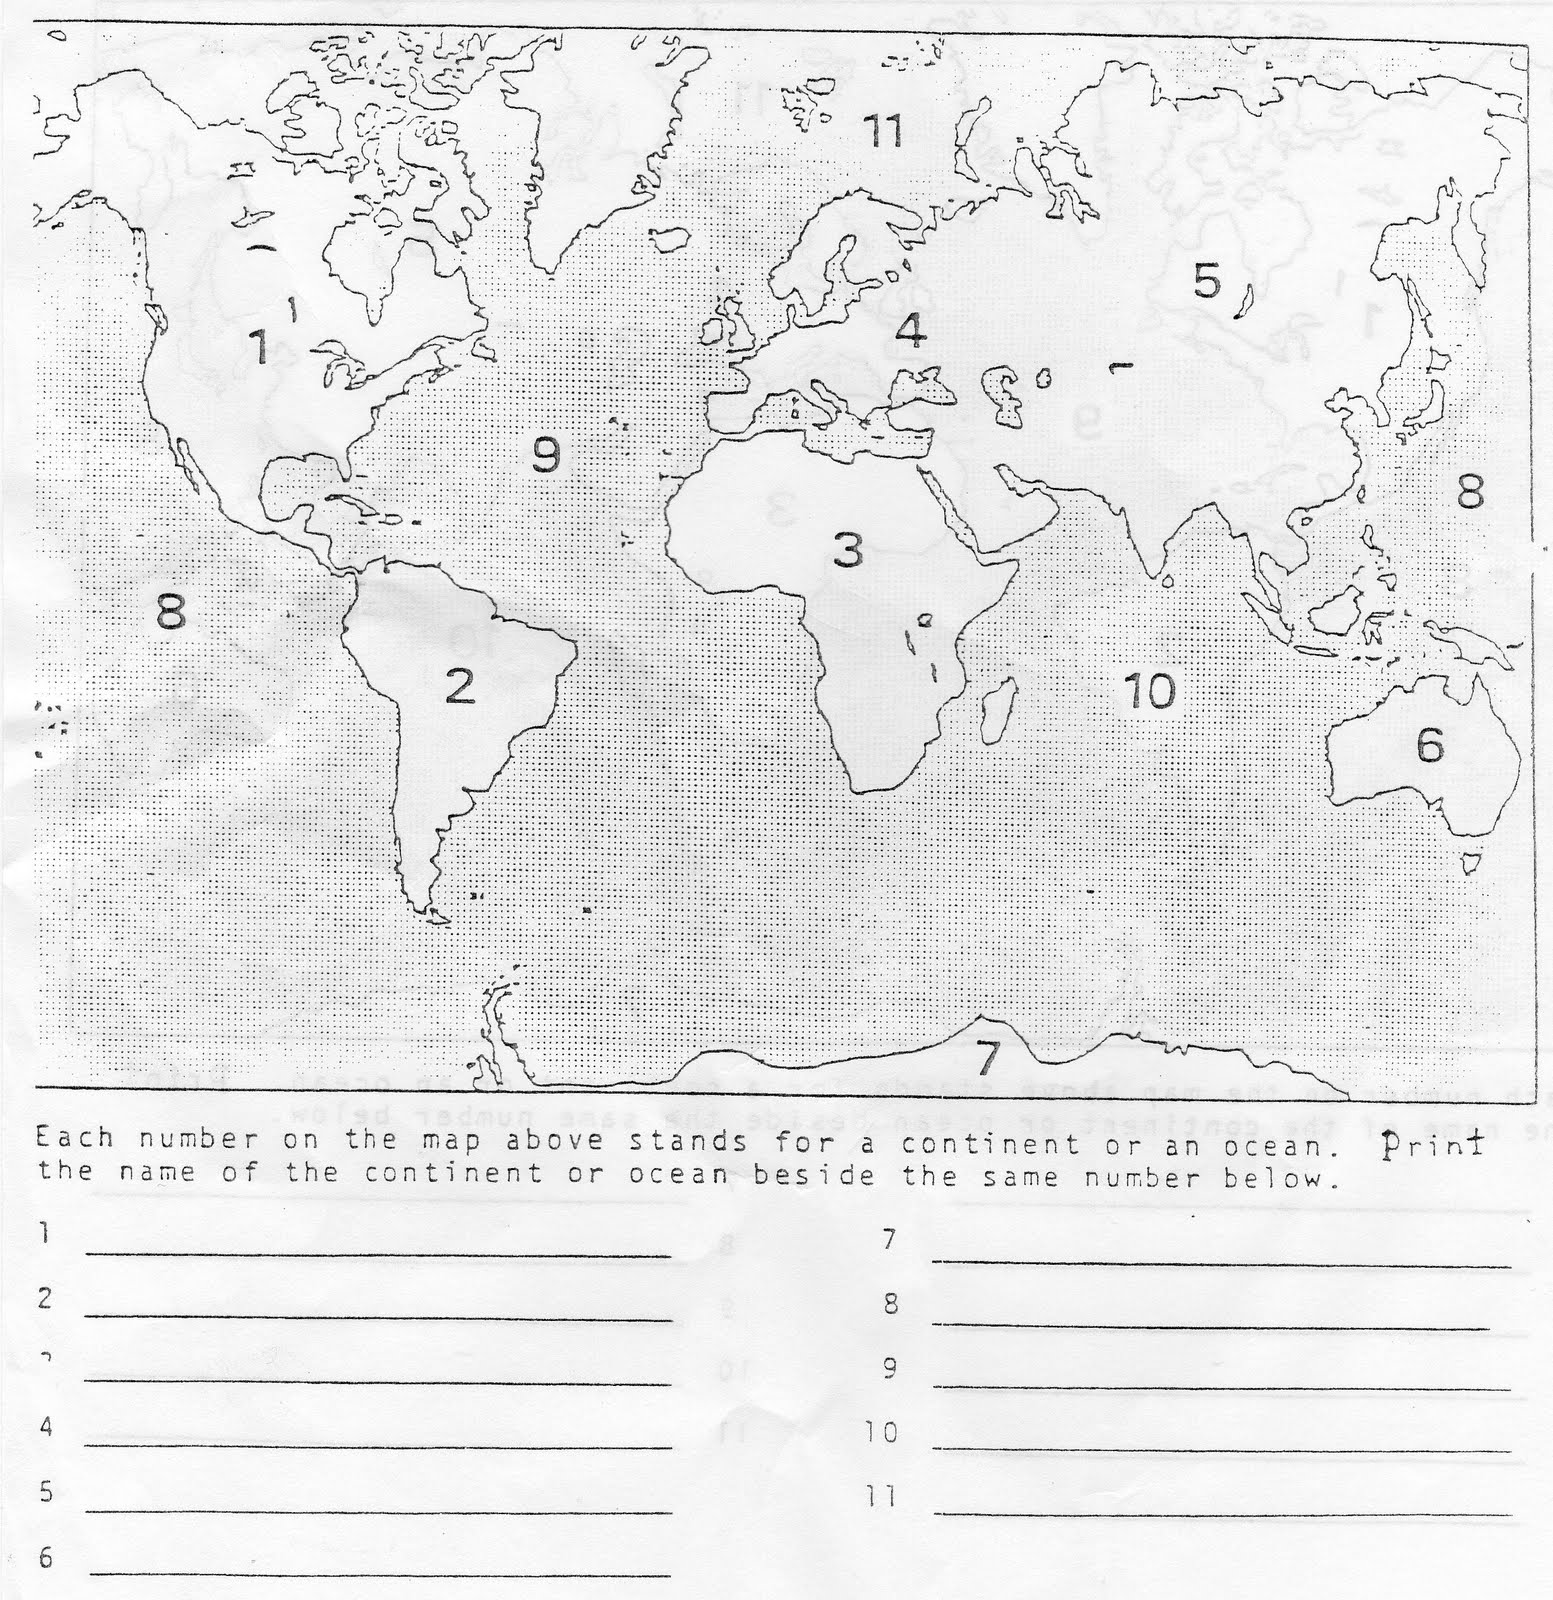 small resolution of Continents And Oceans Worksheets 5th Grade   Printable Worksheets and  Activities for Teachers